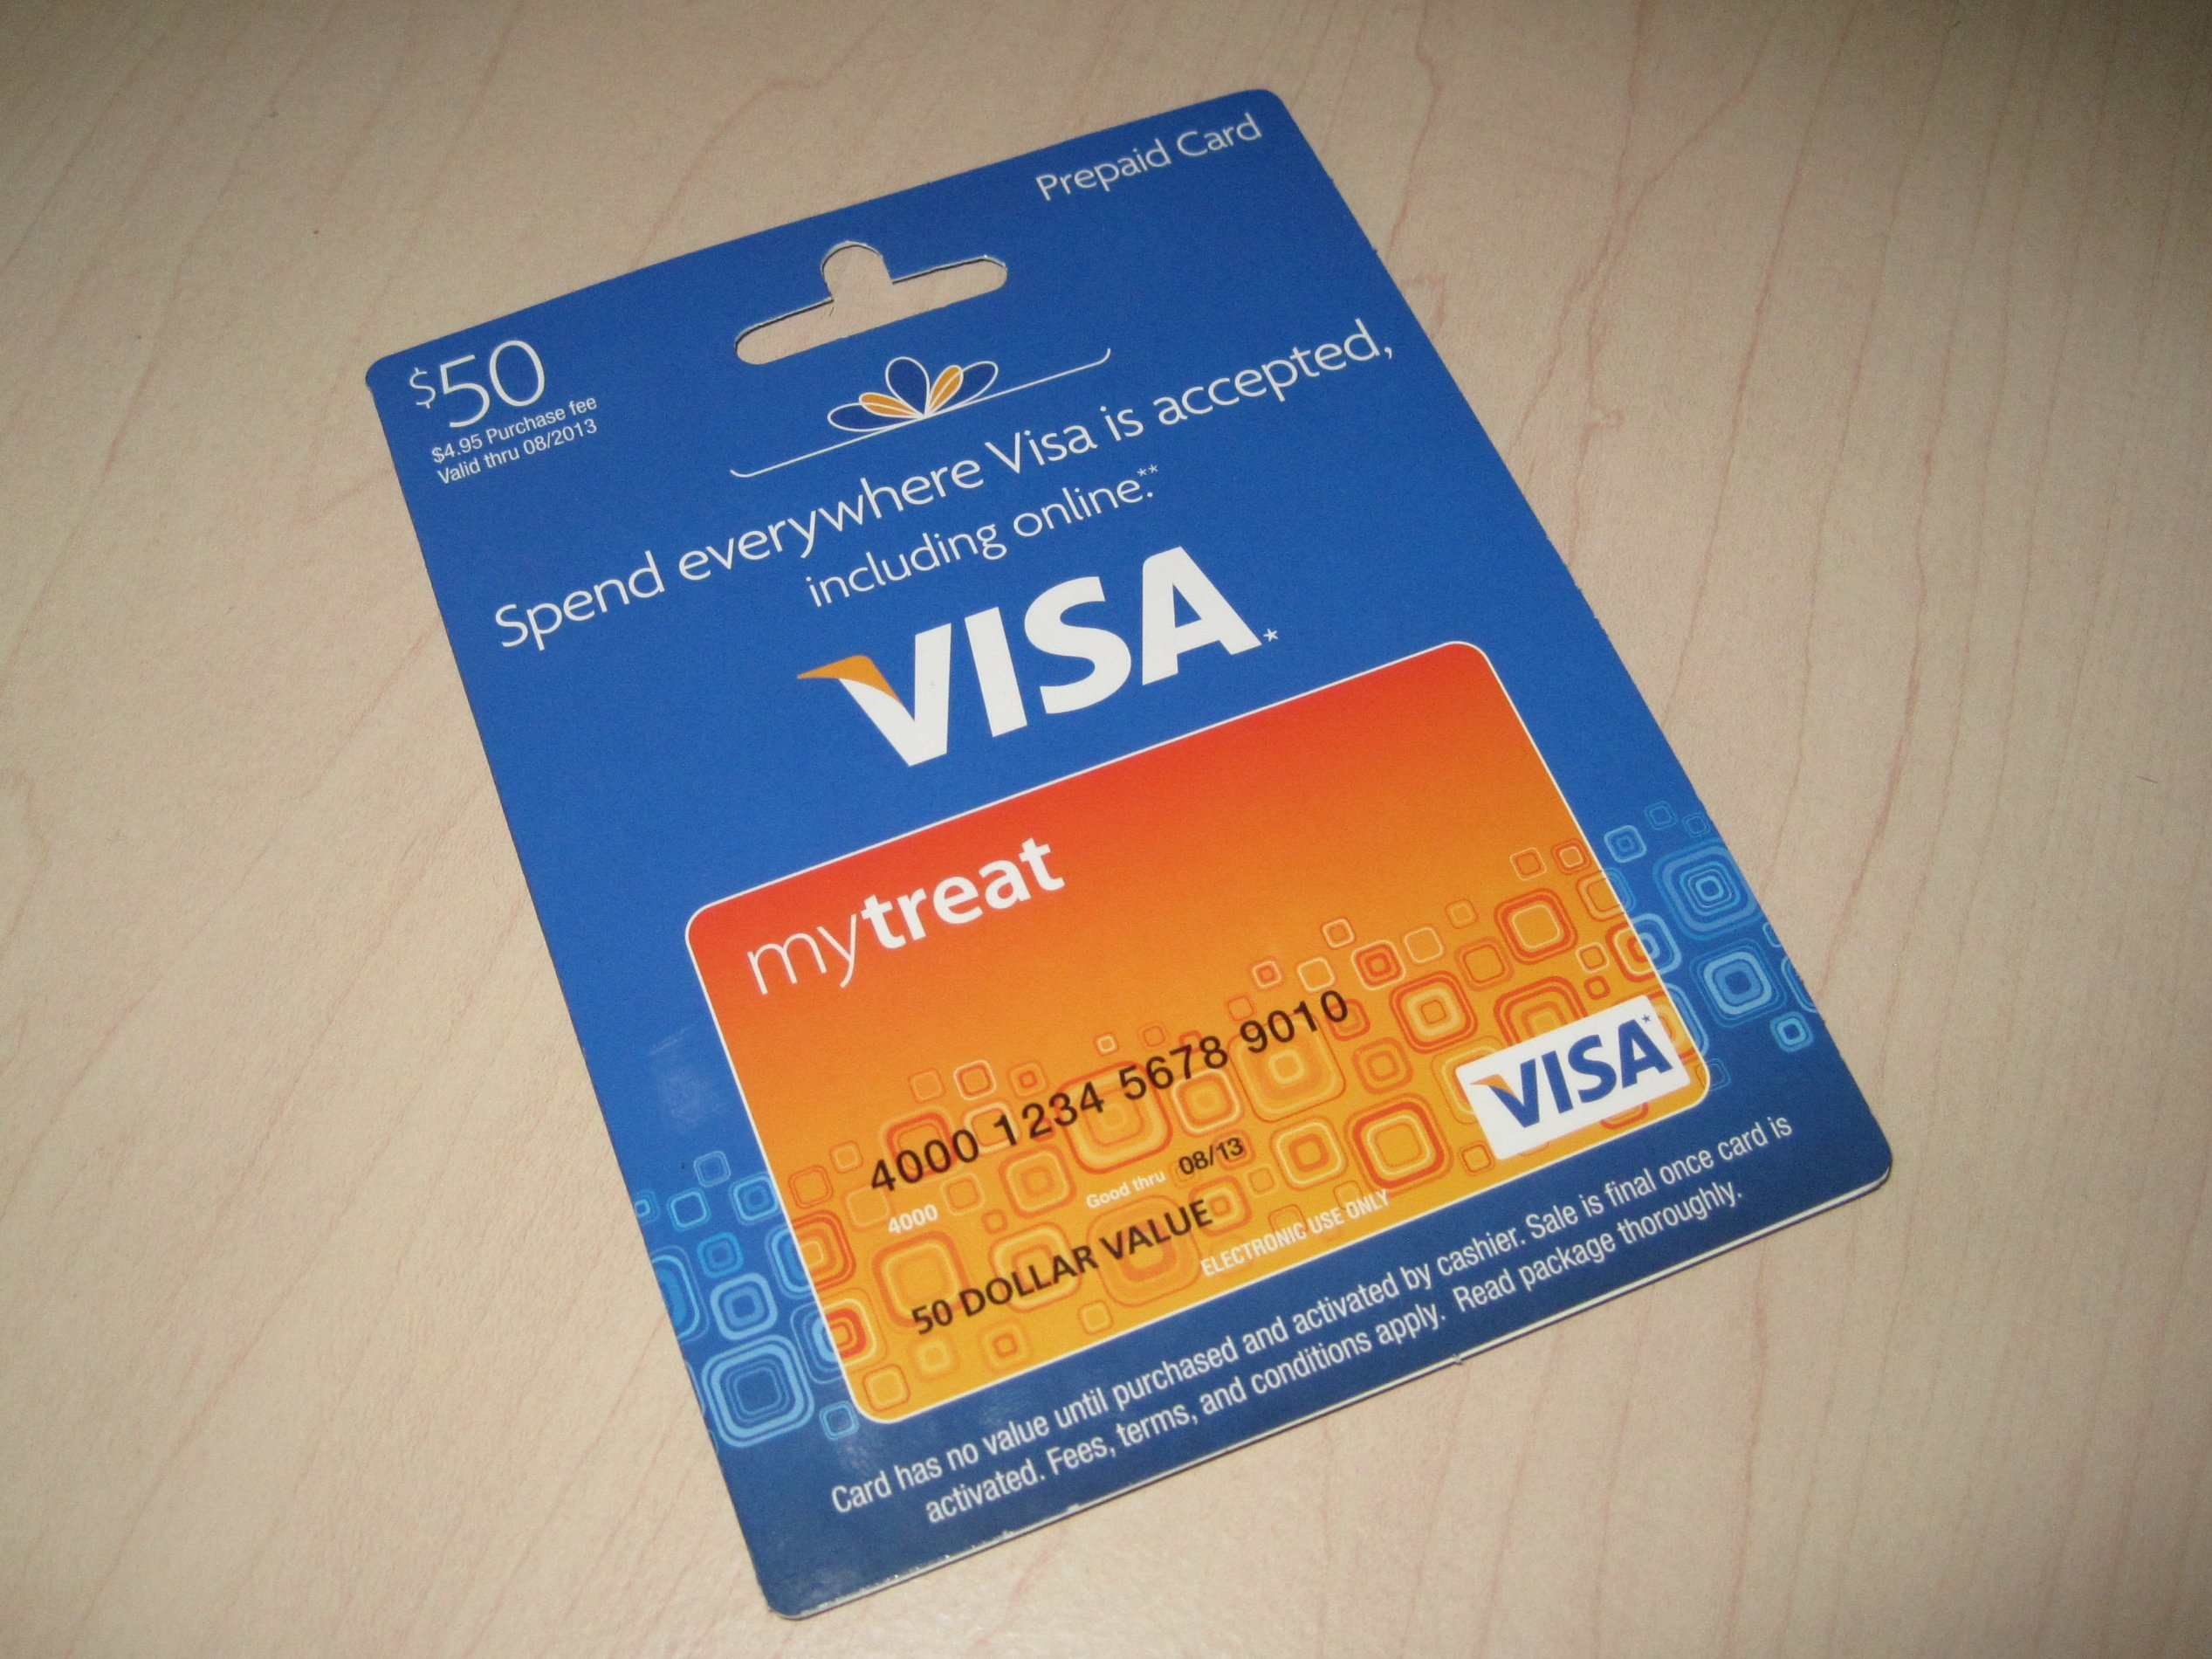 Can i buy a Visa gift card with a credit card